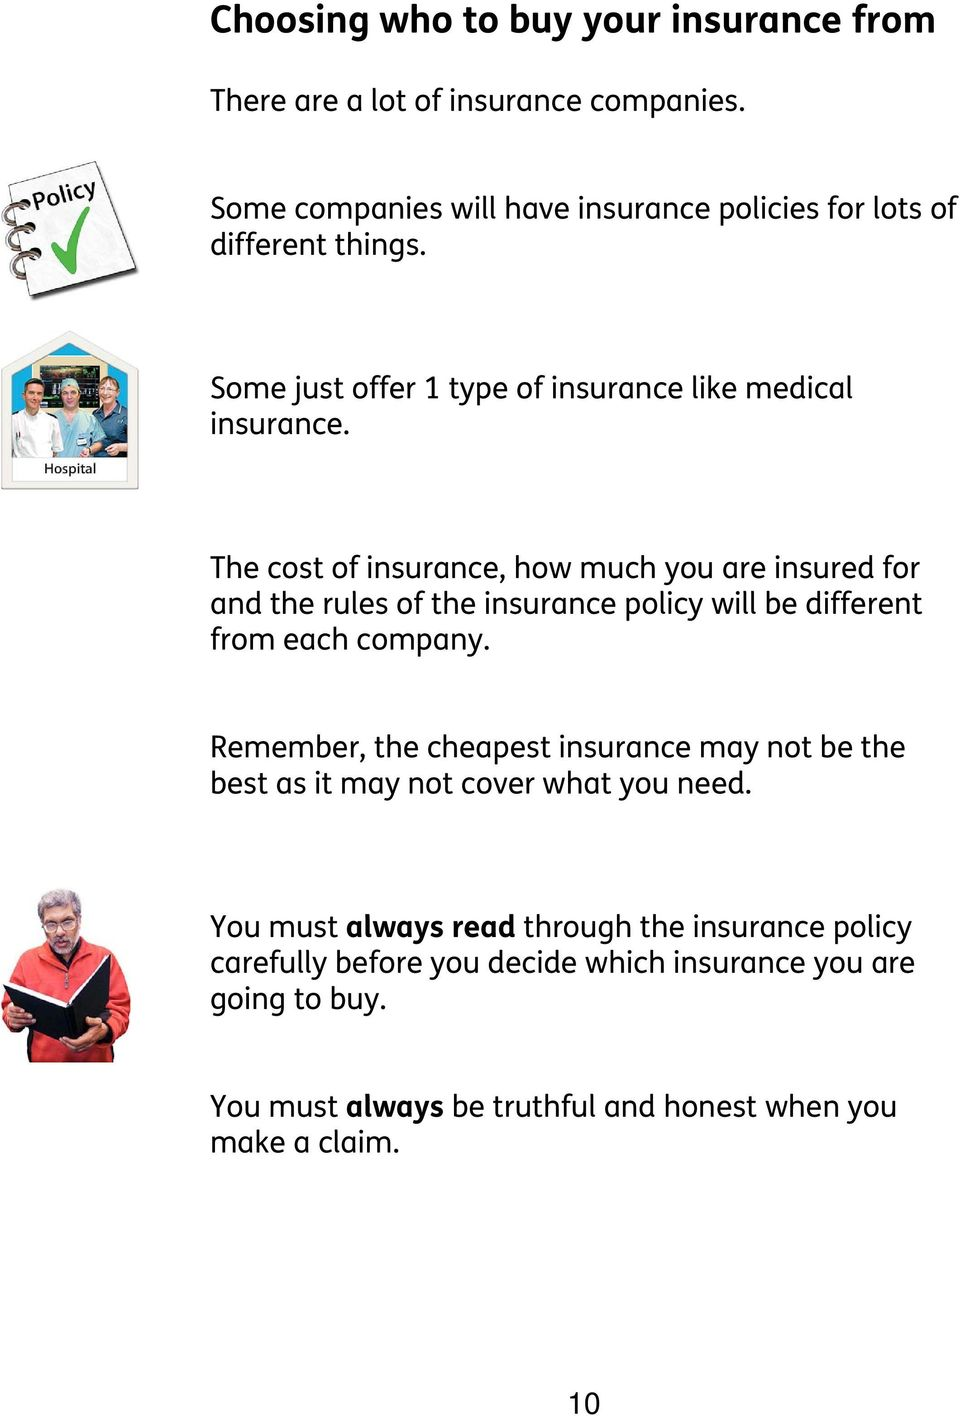 The cost of insurance, how much you are insured for and the rules of the insurance policy will be different from each company.